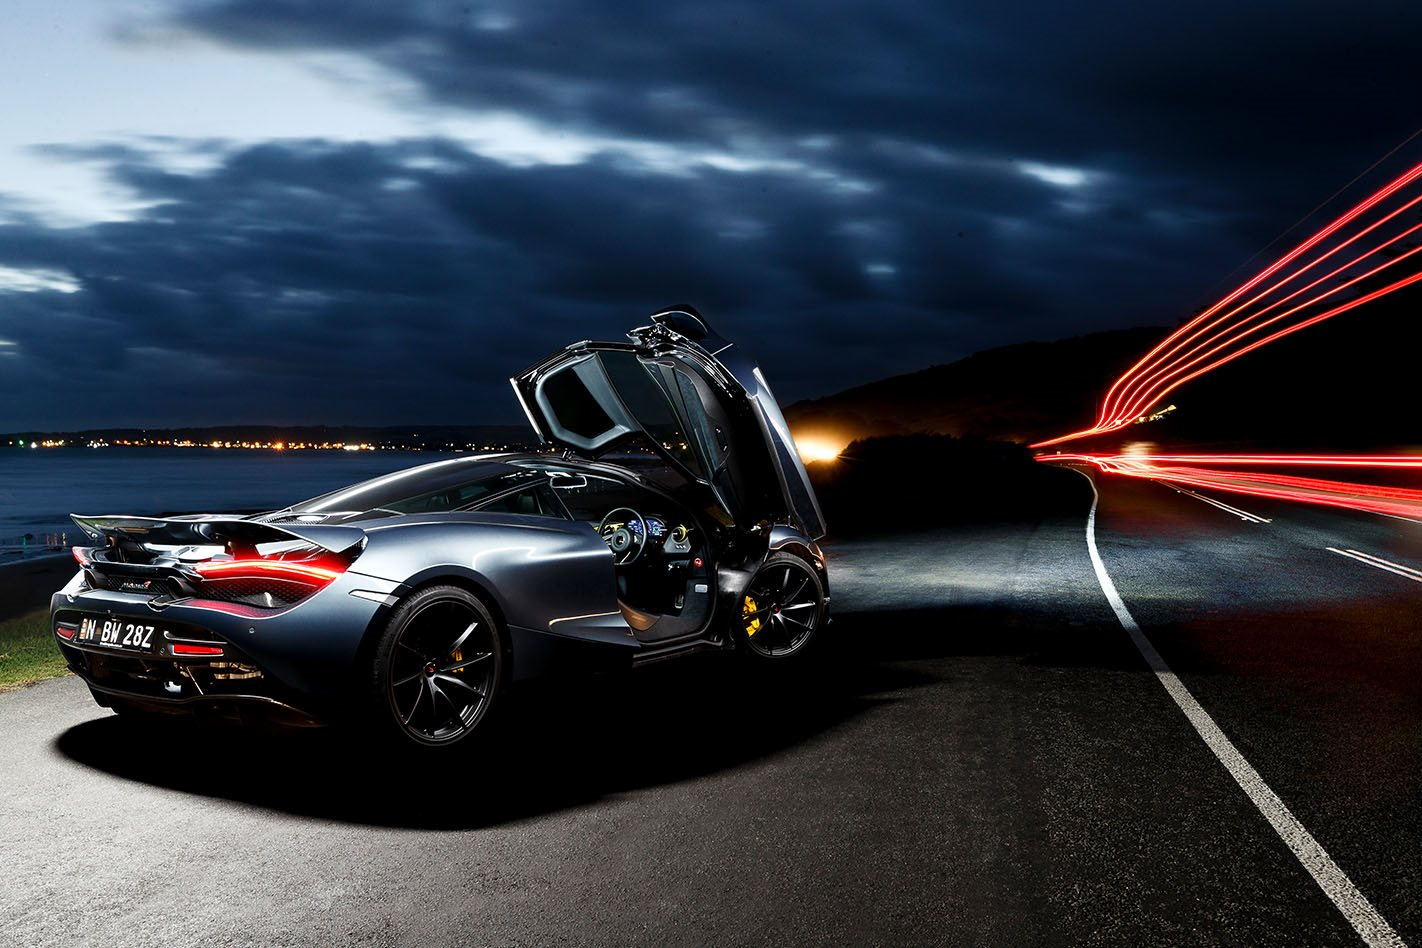 The Collection Is Our Celebration Of The Greatest Automotive Photography In Australia